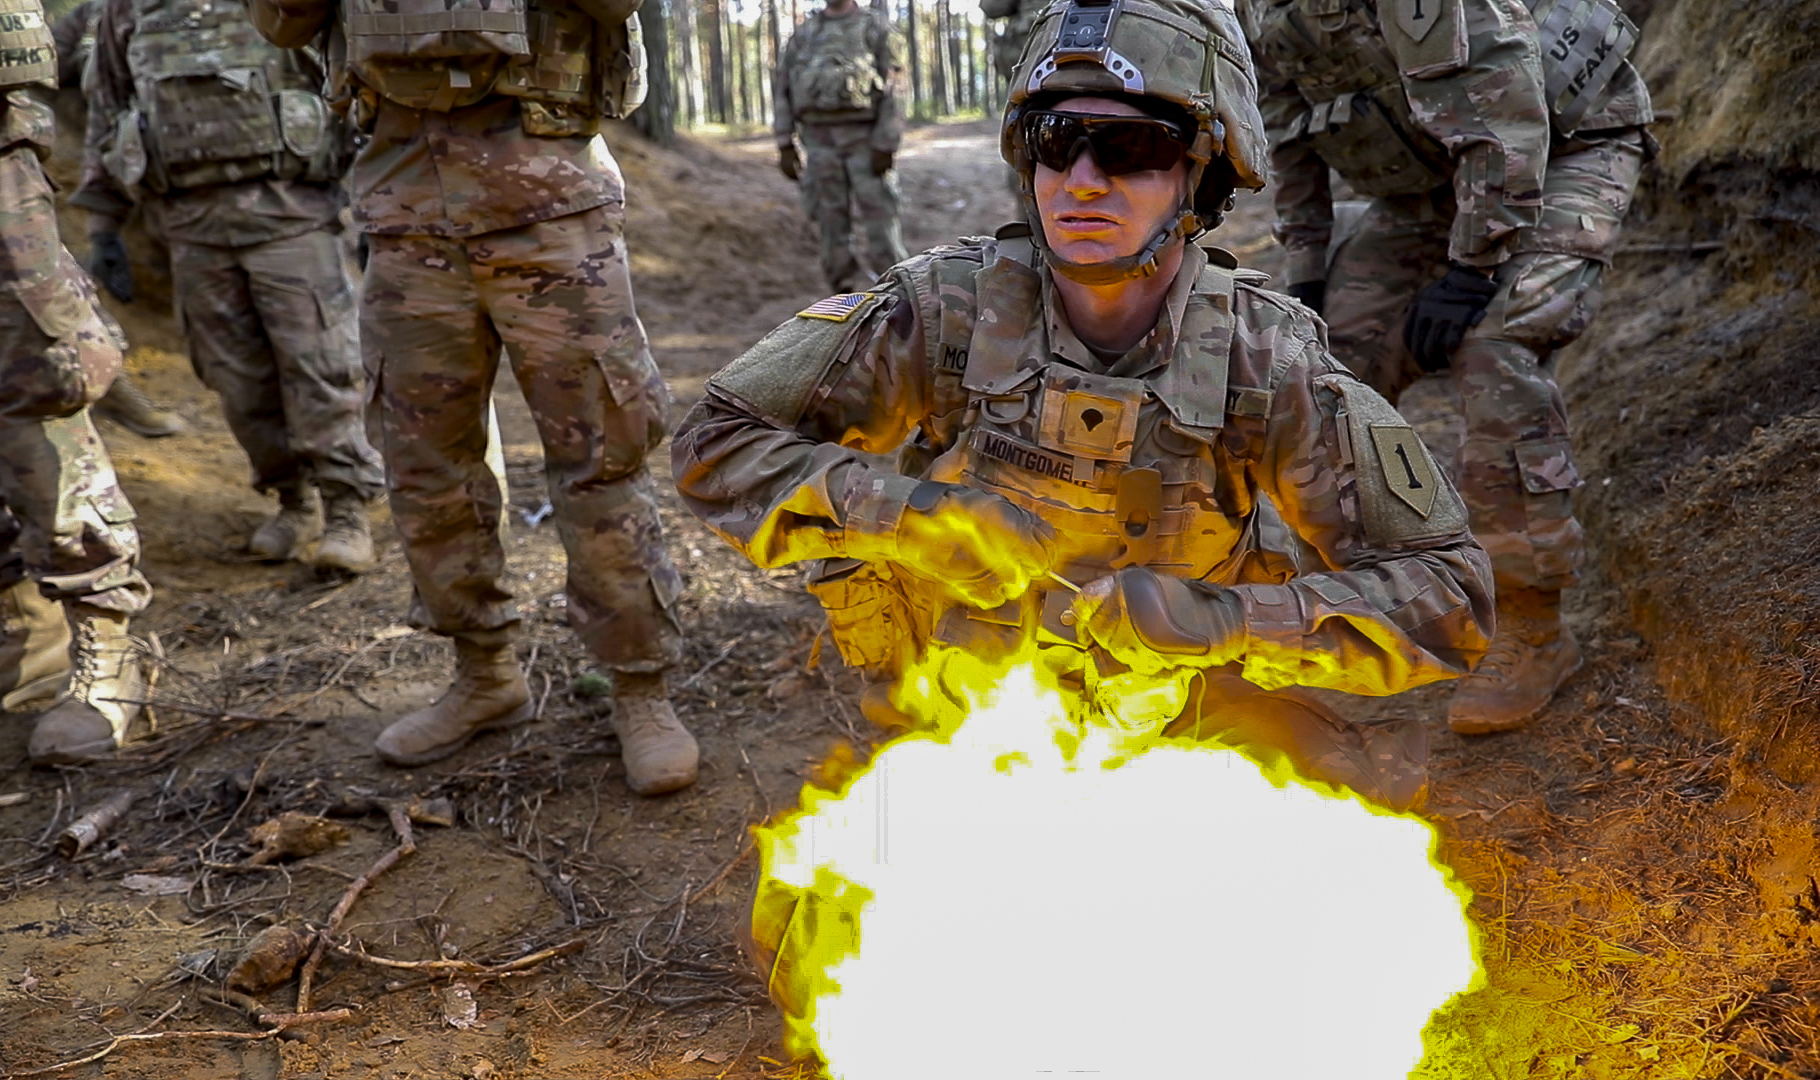 Soldiers from 1st Engineer Battalion, 1st Armored Brigade Combat Team, 1st Infantry Division, take cover March 6, 2019, as a soldier detonates an explosion during live fire explosives training at Joanna range in Zagan, Poland. (Sgt. Thomas Mort/Army)